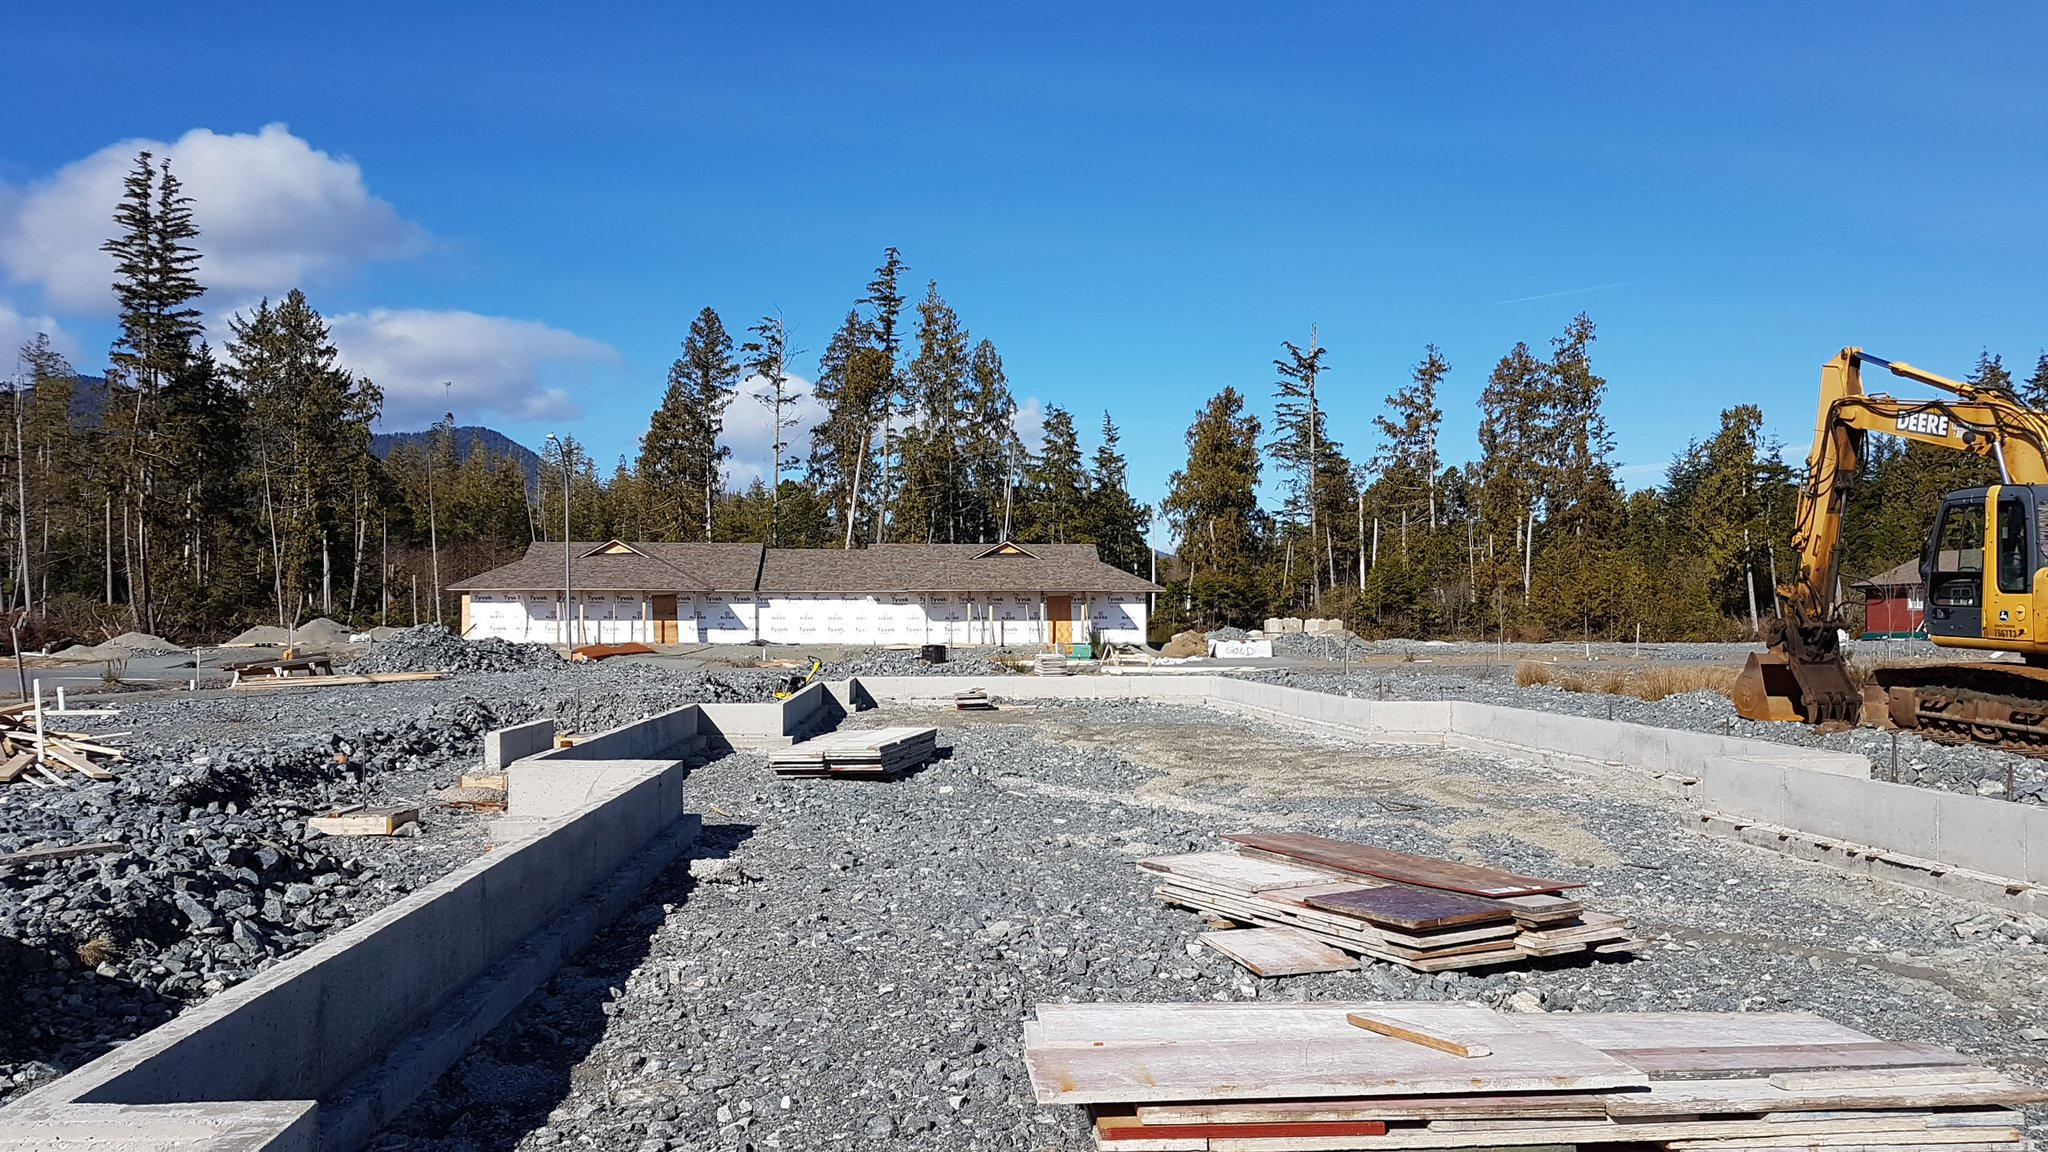 Background image foundation 6 - Ahousaht Admin On Twitter 4 Unit Teacherage In The Background 6 Unit Multiplex Foundation In The Foreground Https T Co Ivhsct1fey